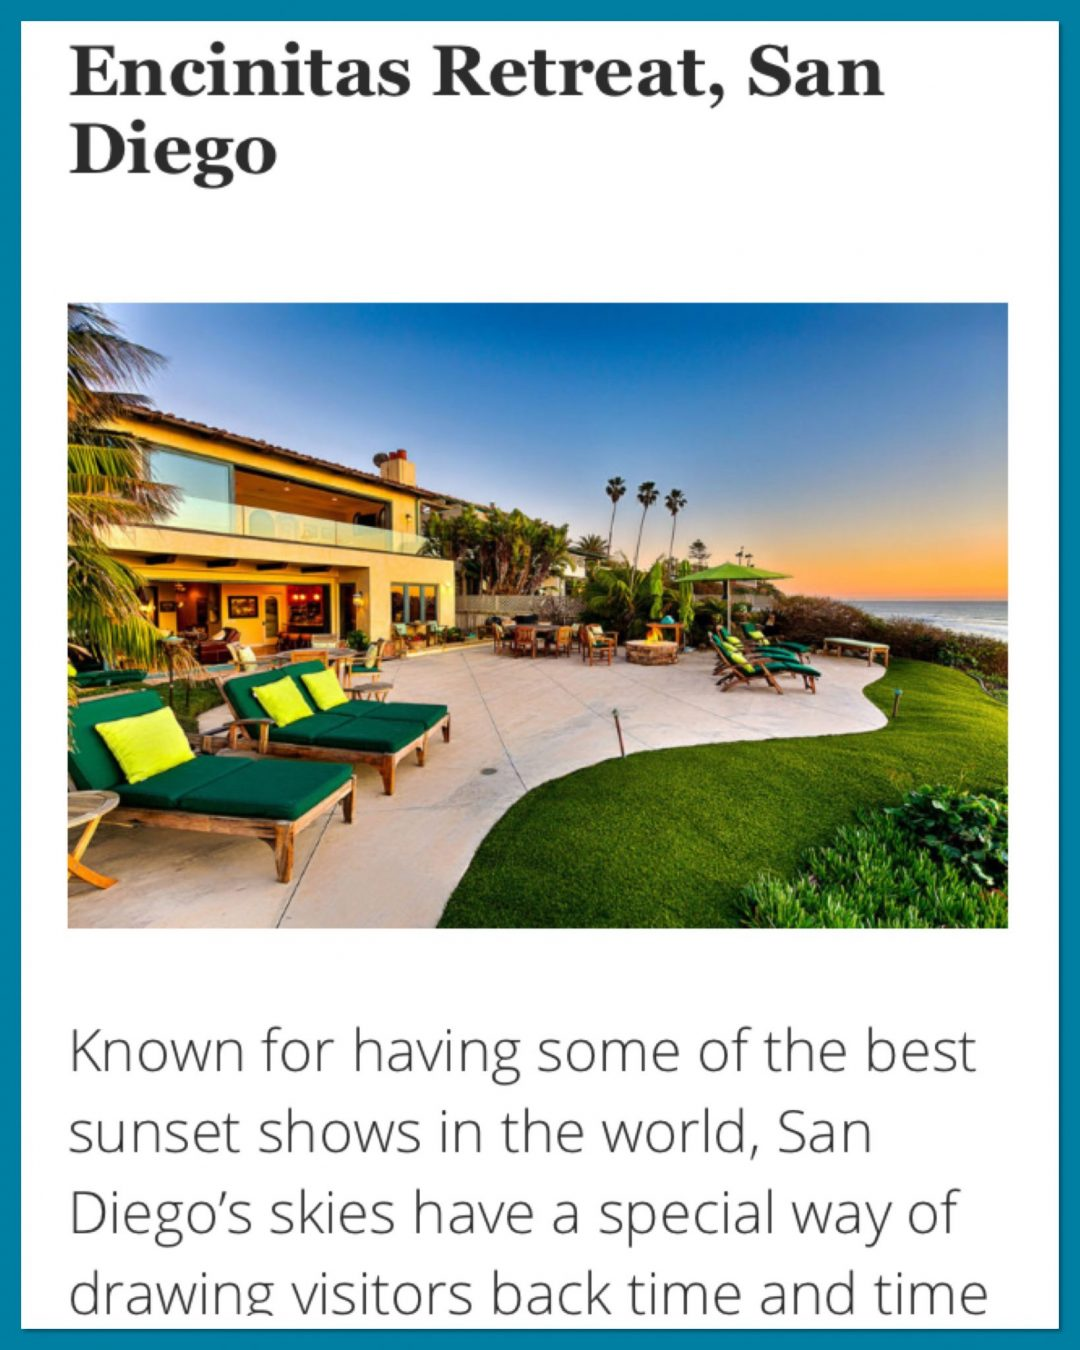 San Diego luxury beach front property and sunset I dream of for ending our Route 1 road trip - screenshot of Luxury Retreats Magazine